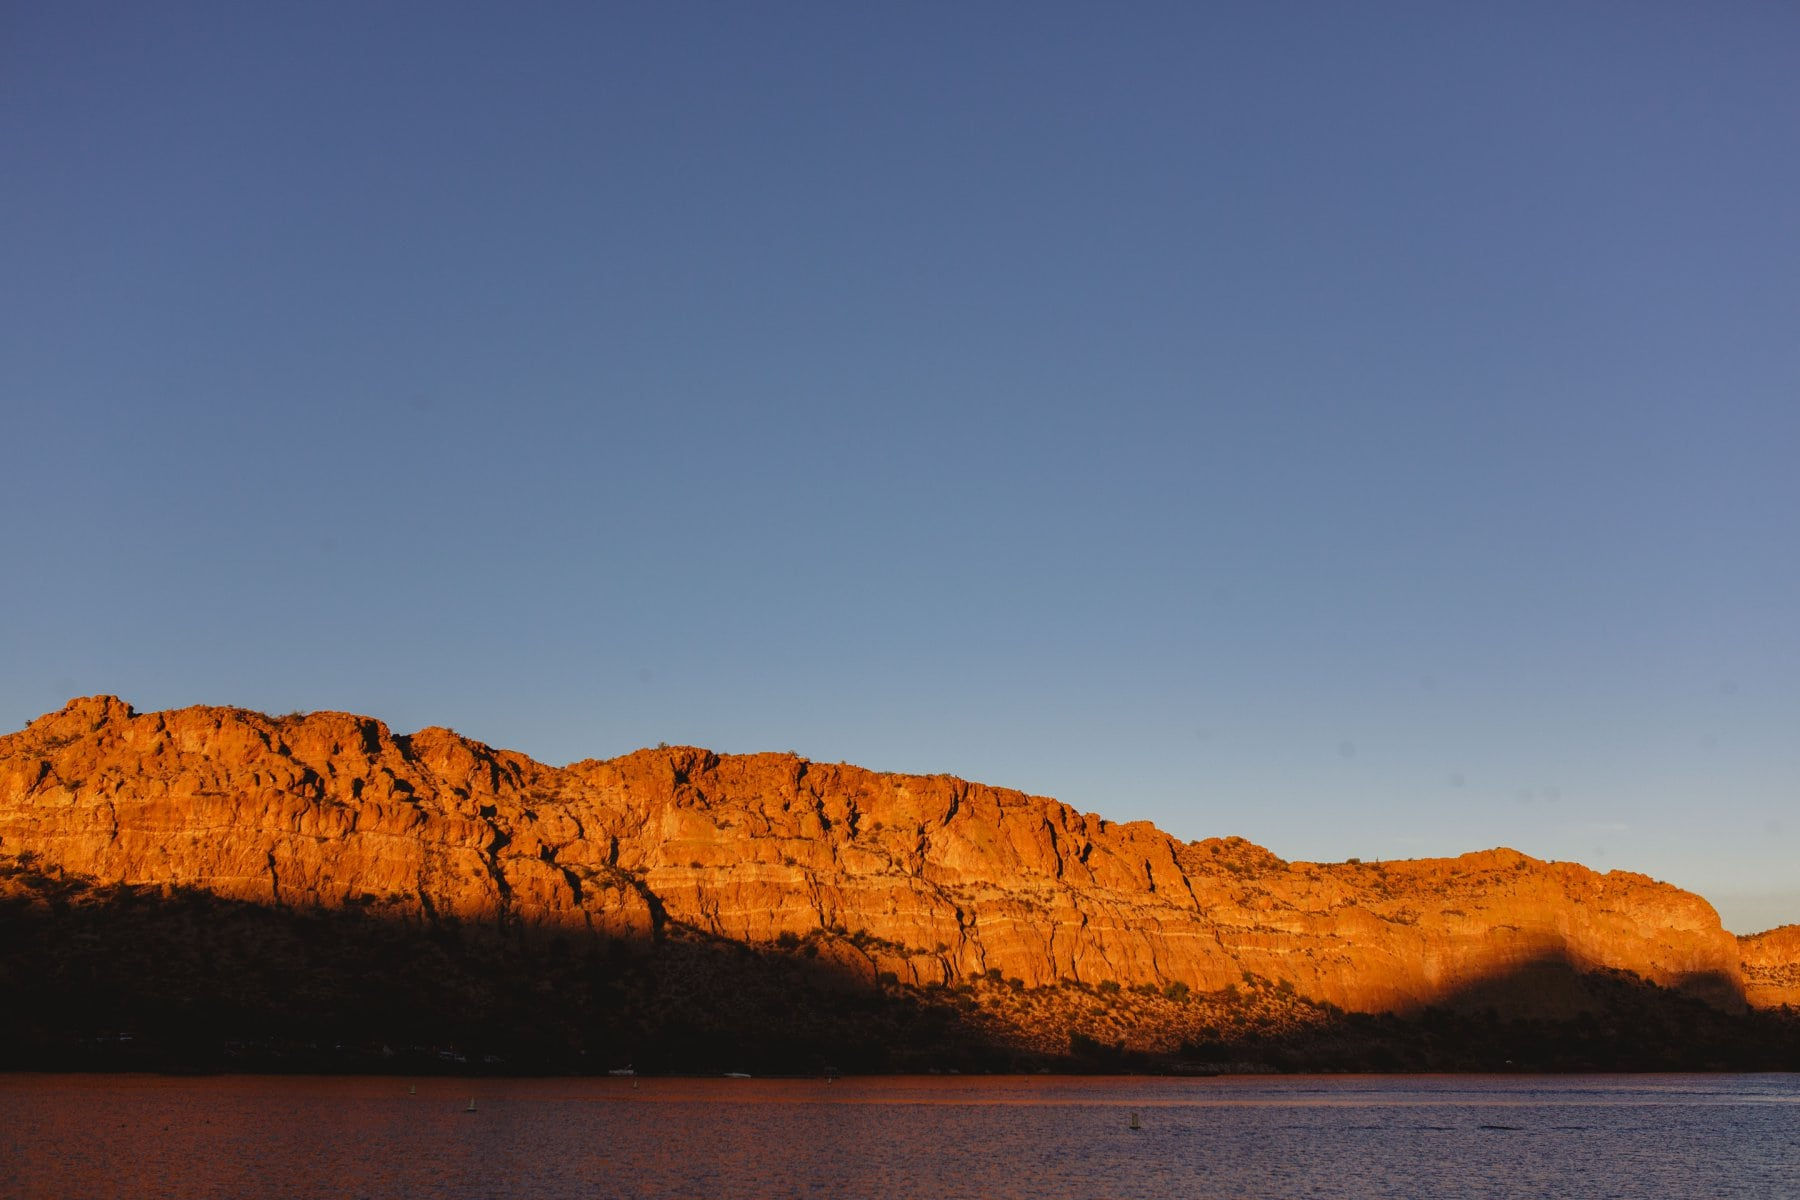 Saguaro Lake at sunset